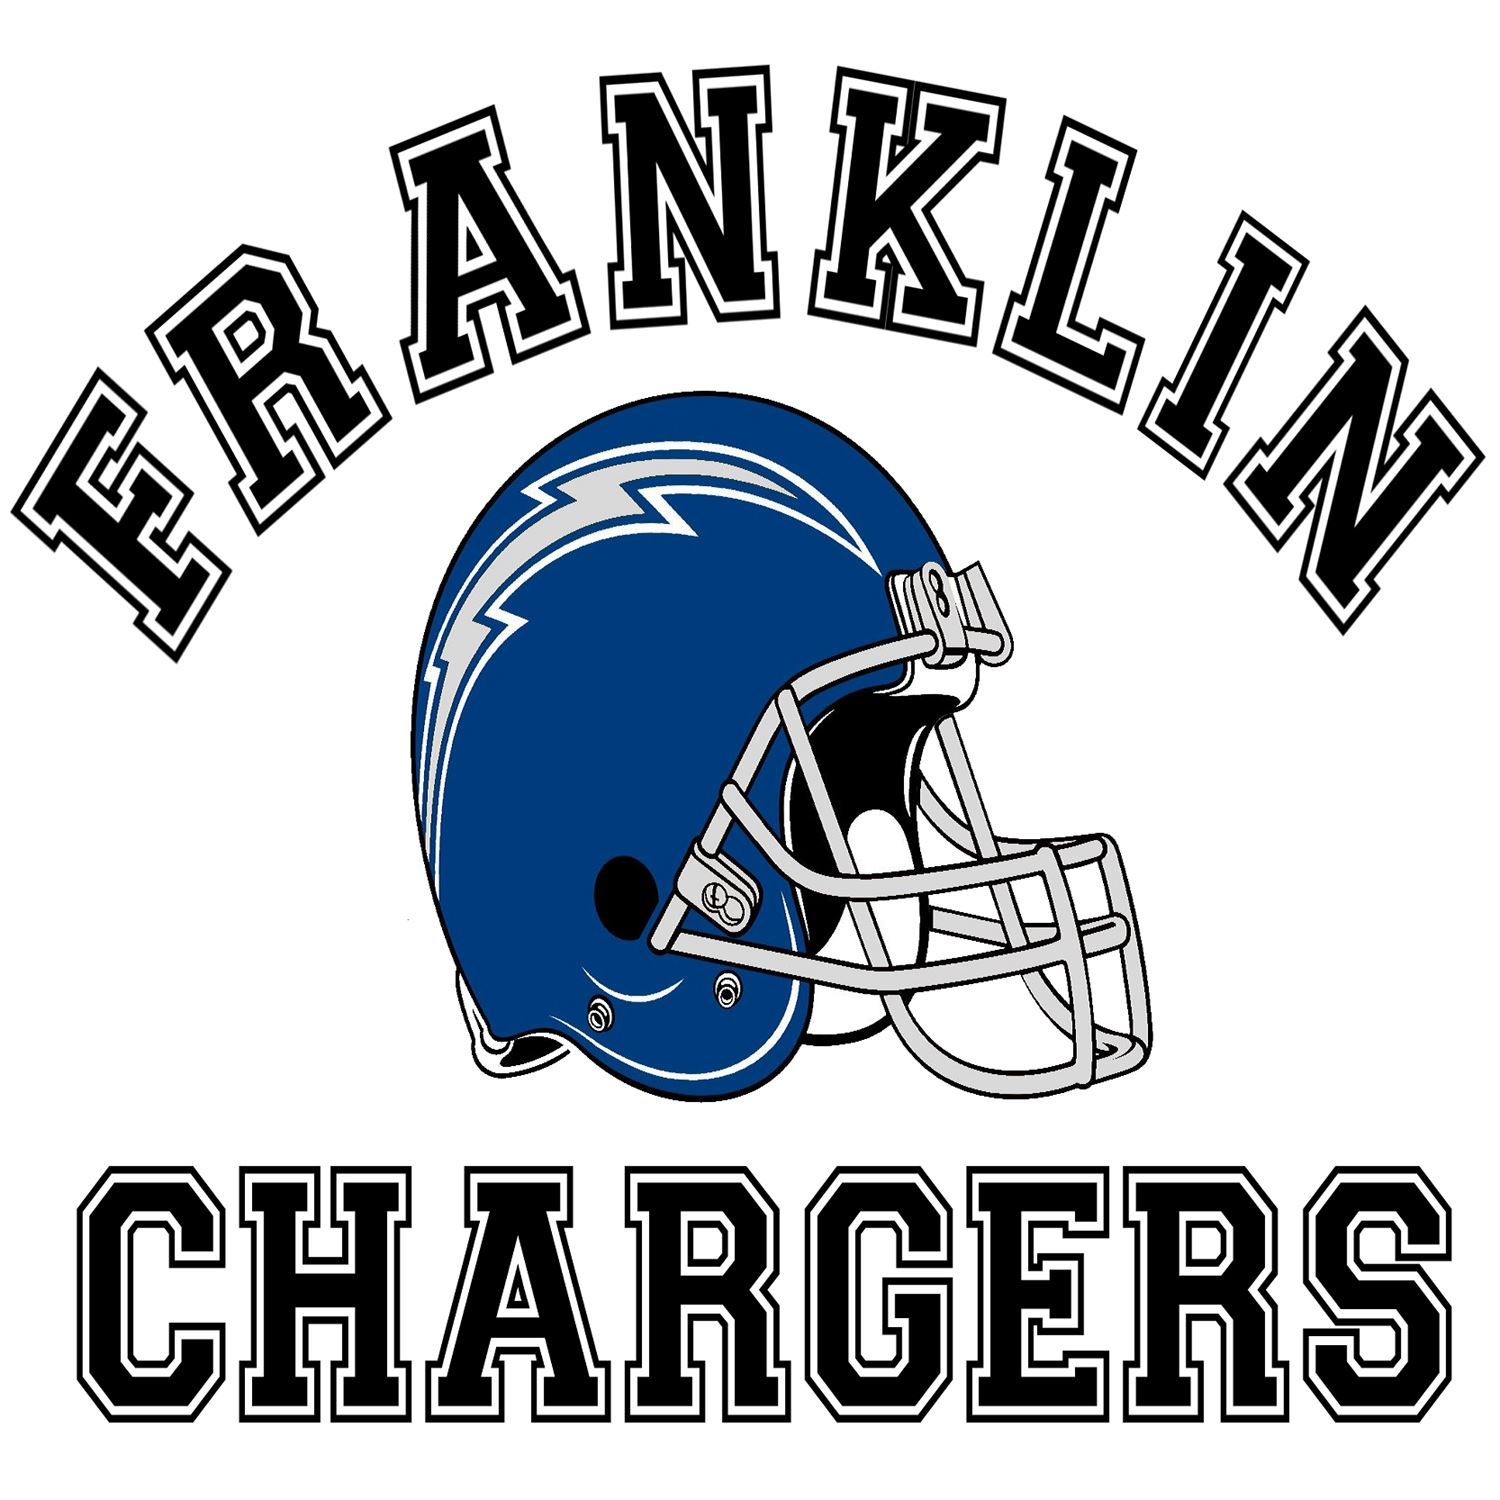 Franklin Chargers - C Squad